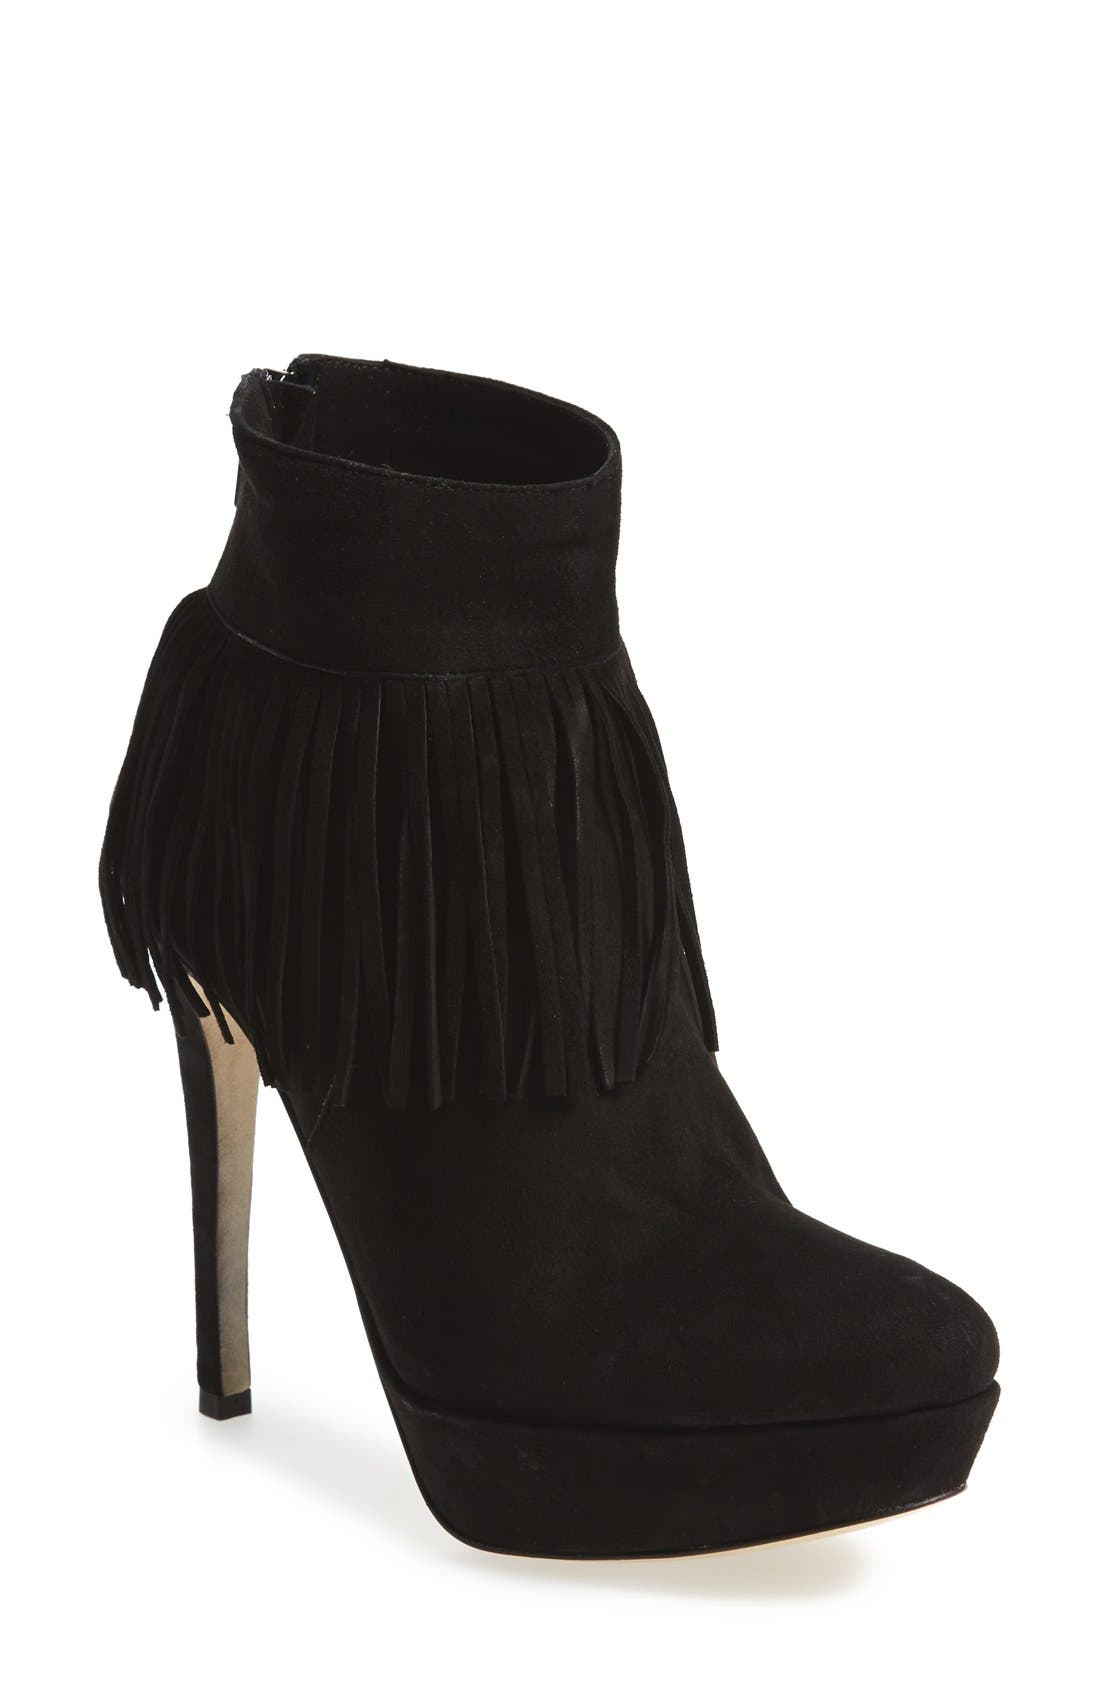 Alternate Image 1 Selected - Charles David 'Lula' Platform Fringe Bootie (Women)